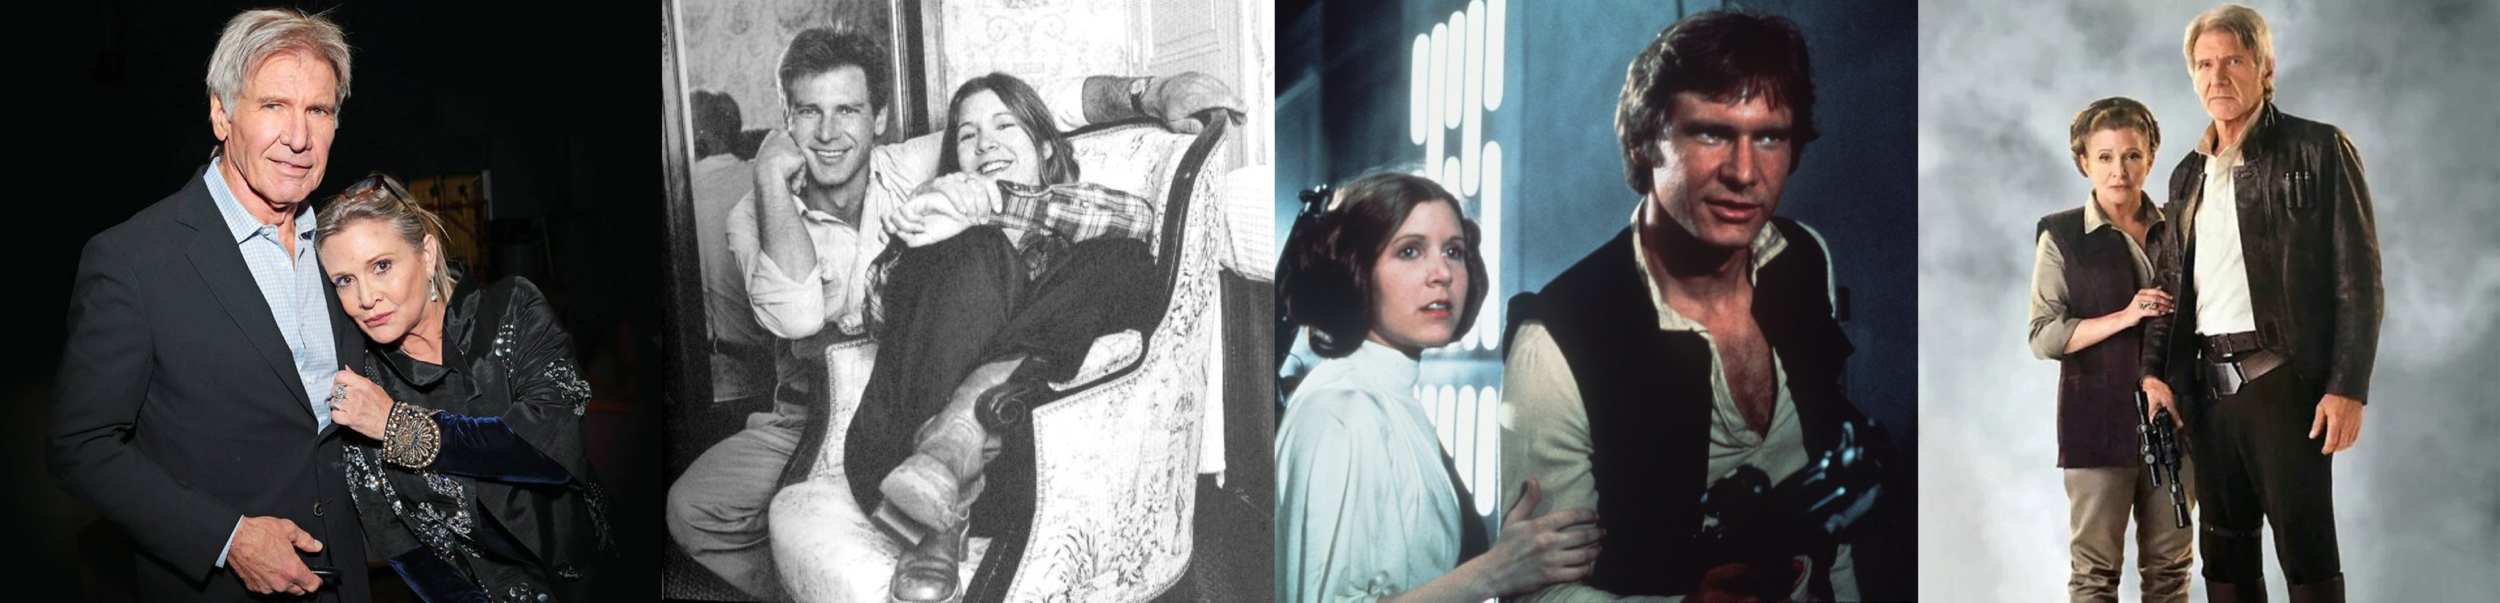 Princess Leia (Carrie Fisher) and Han Solo (Harrison Ford)…Then and Now